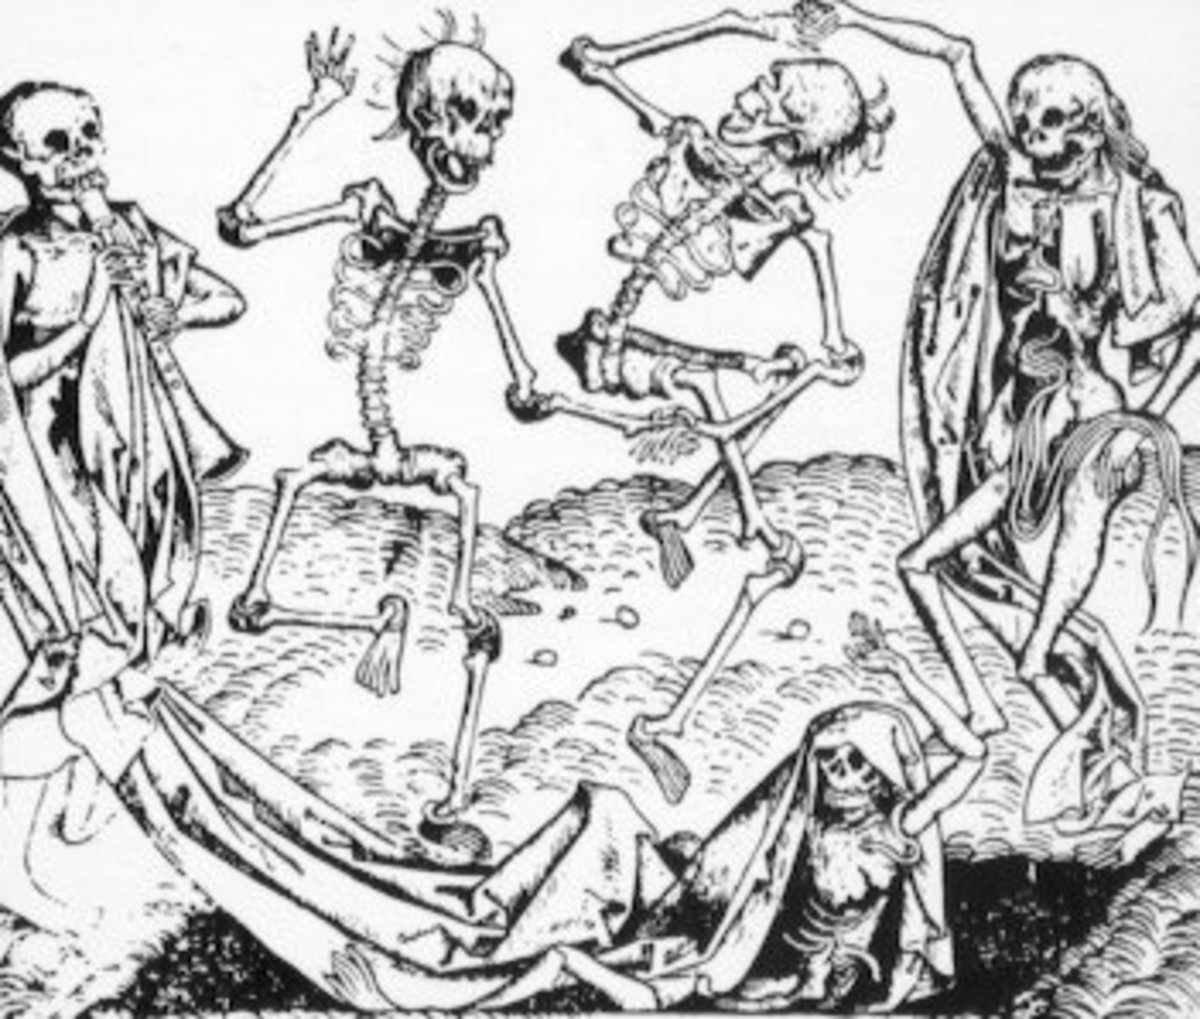 Dance Macabre depicting the madness [Ergot poisoning] that hit Europe after the Black Death.